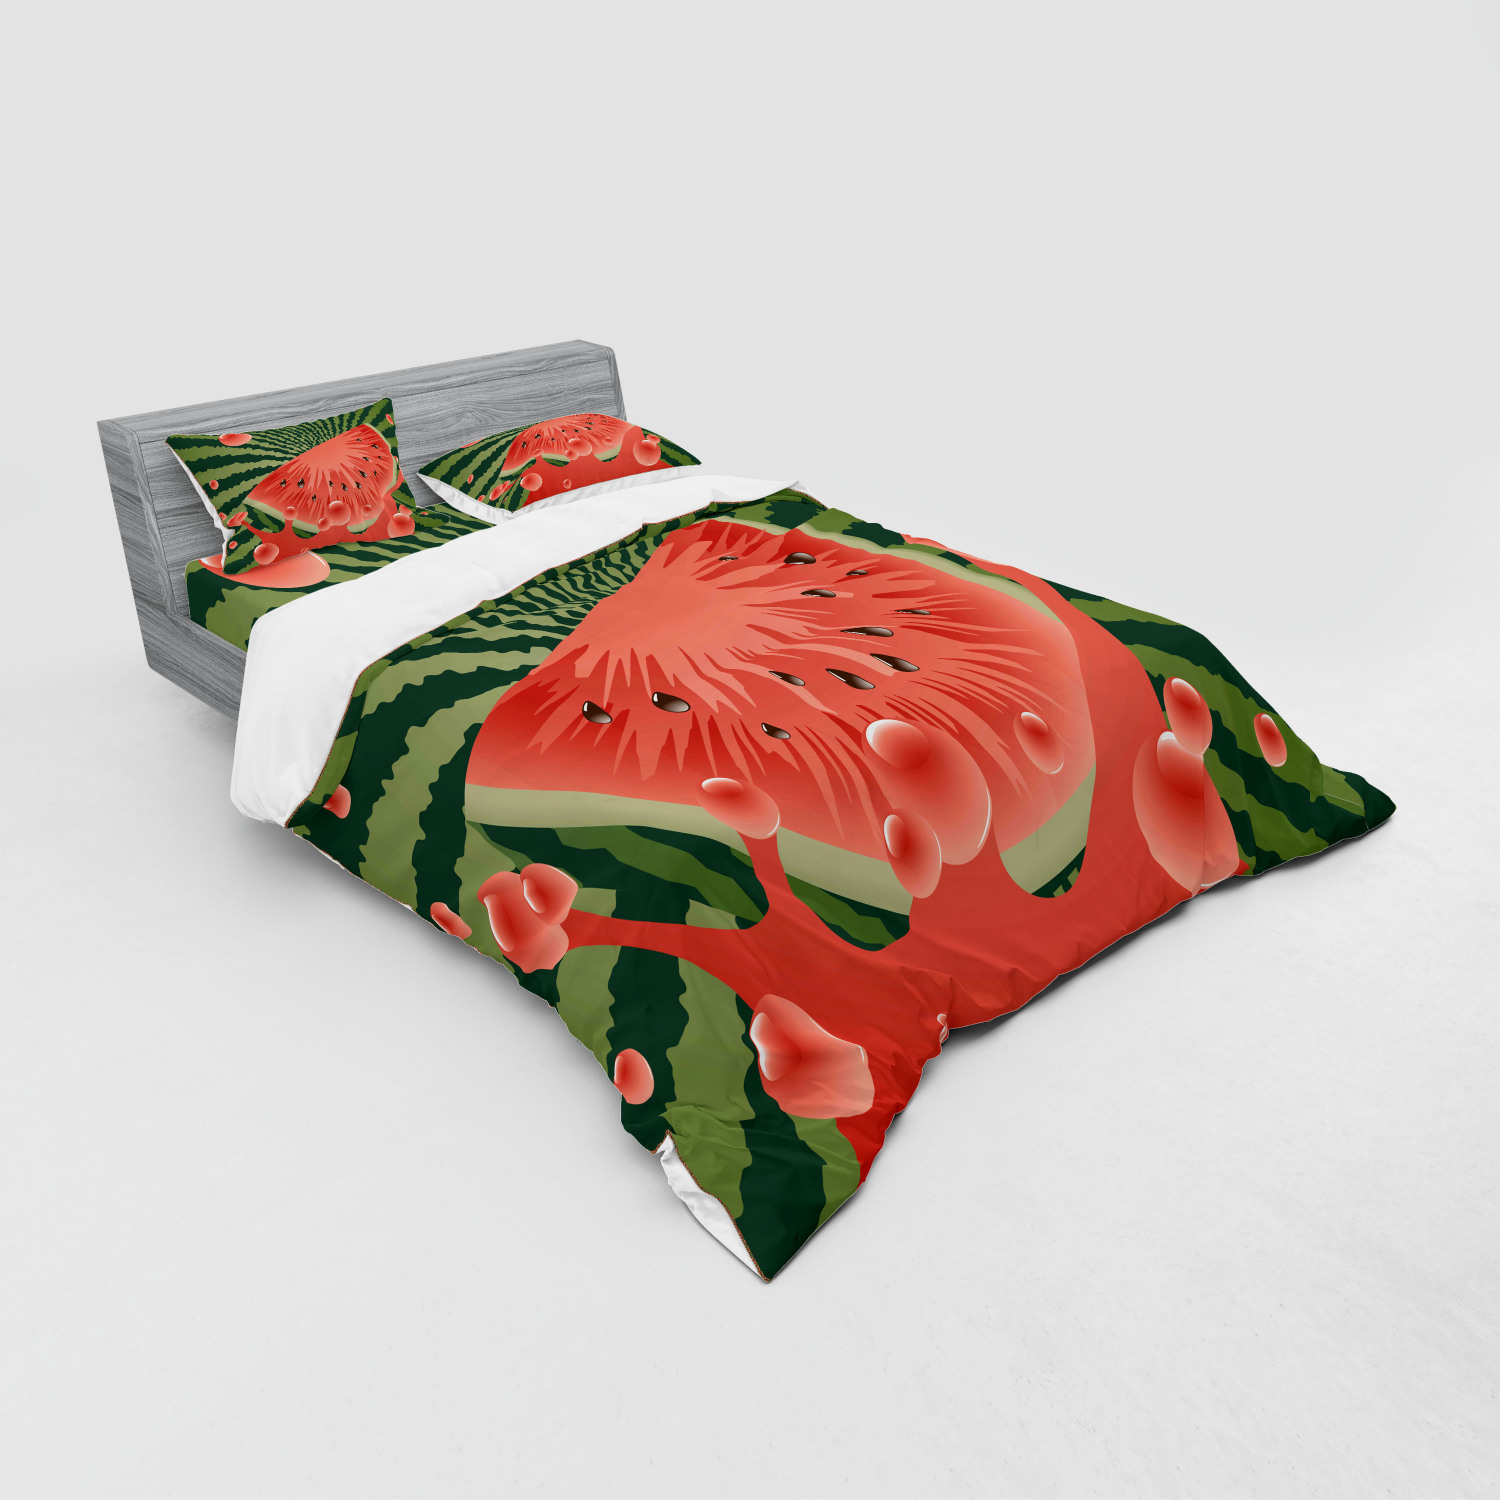 thumbnail 223 - Ambesonne Summer Bedding Set Duvet Cover Sham Fitted Sheet in 3 Sizes